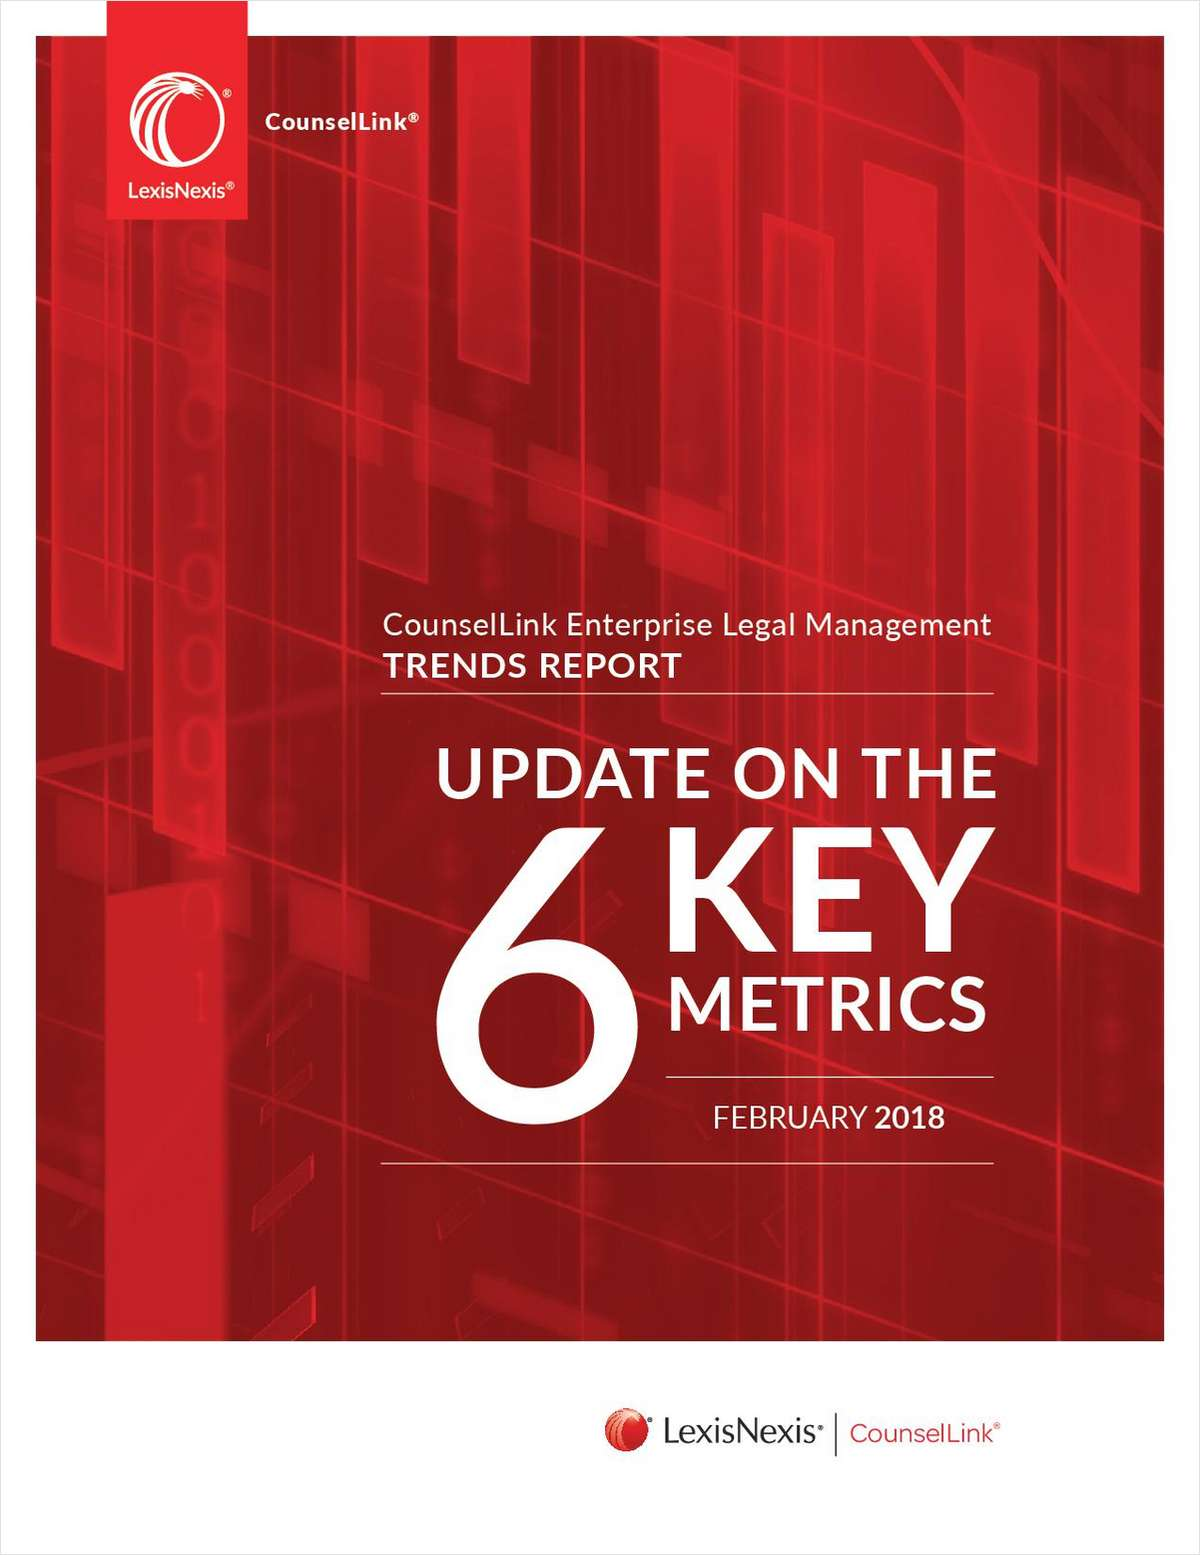 2018 CounselLink Trends Report: 6 Key Legal Services Industry Metrics